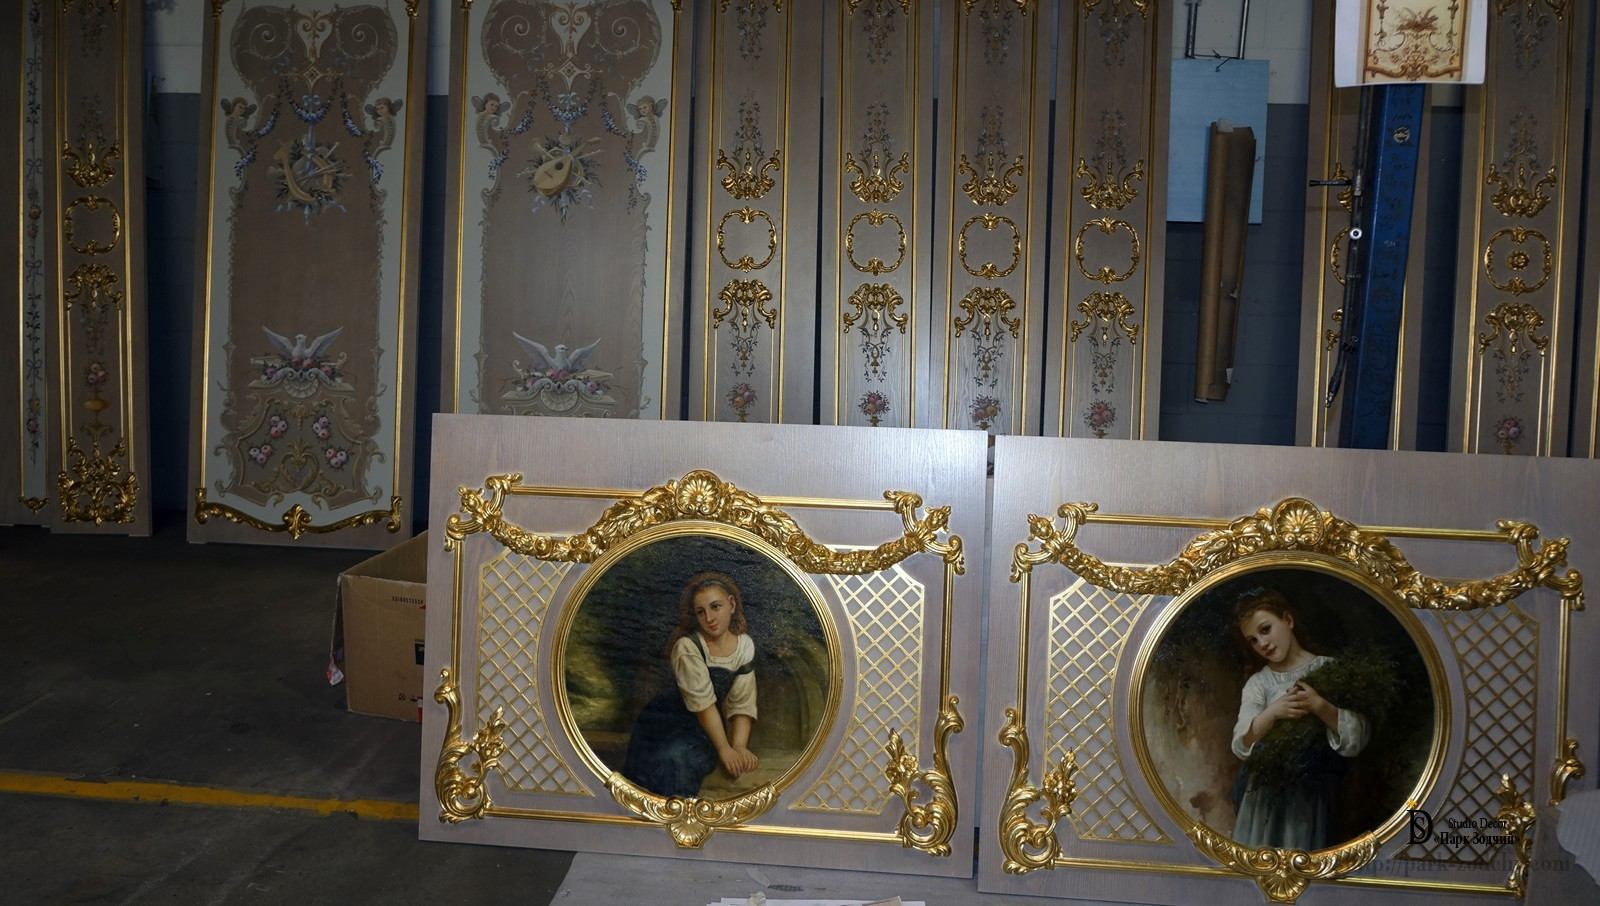 Elements of boiserie with scenic panels and gilding